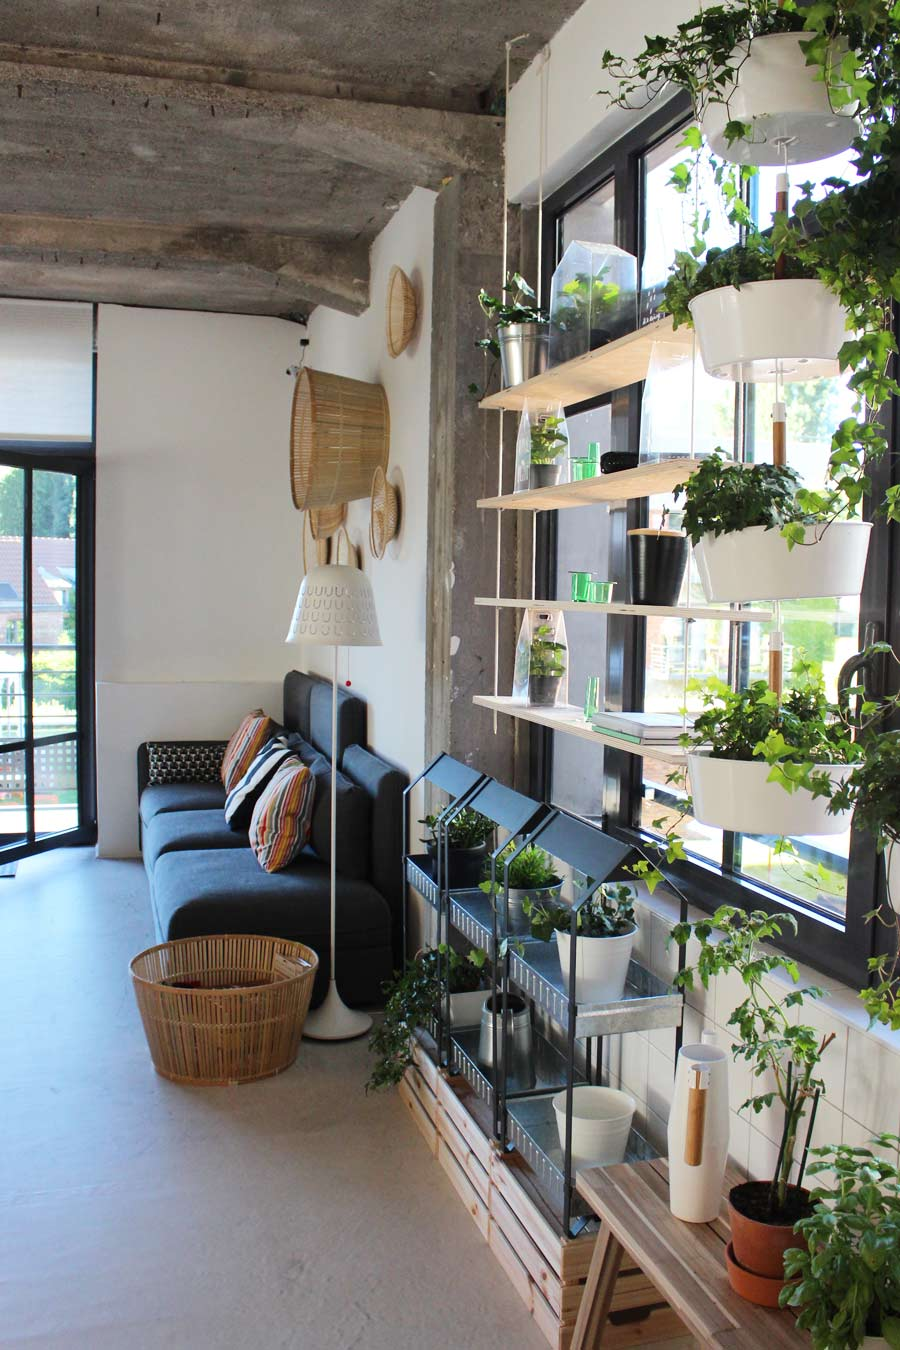 ikea-gast_pop-up-appartement_13zor.be_9